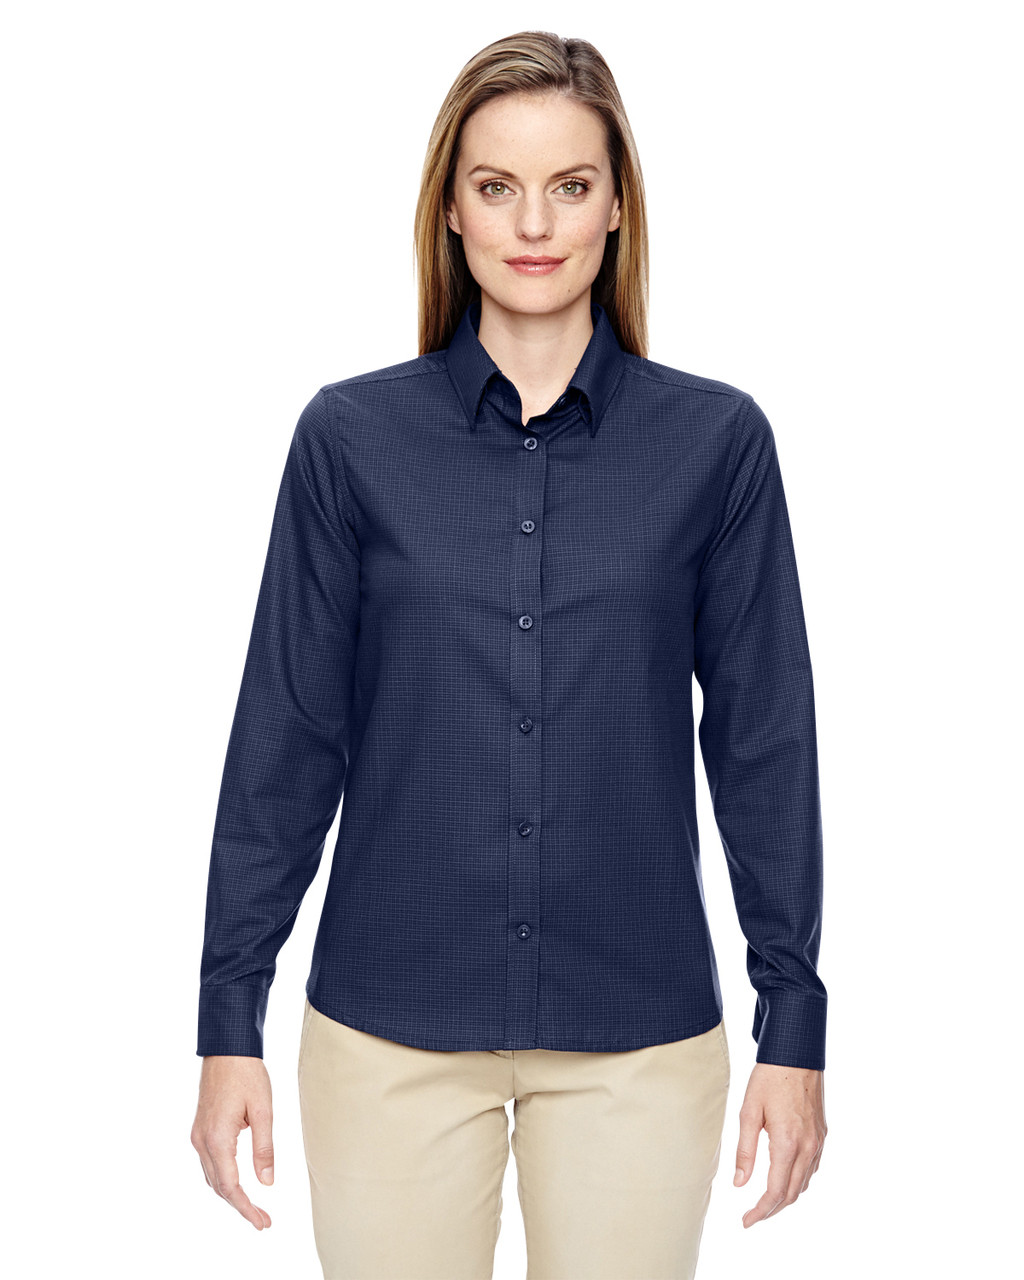 Classic Navy - 77043 North End Paramount Wrinkle-Resistant Cotton Blend Twill Checkered Shirt | Blankclothing.ca